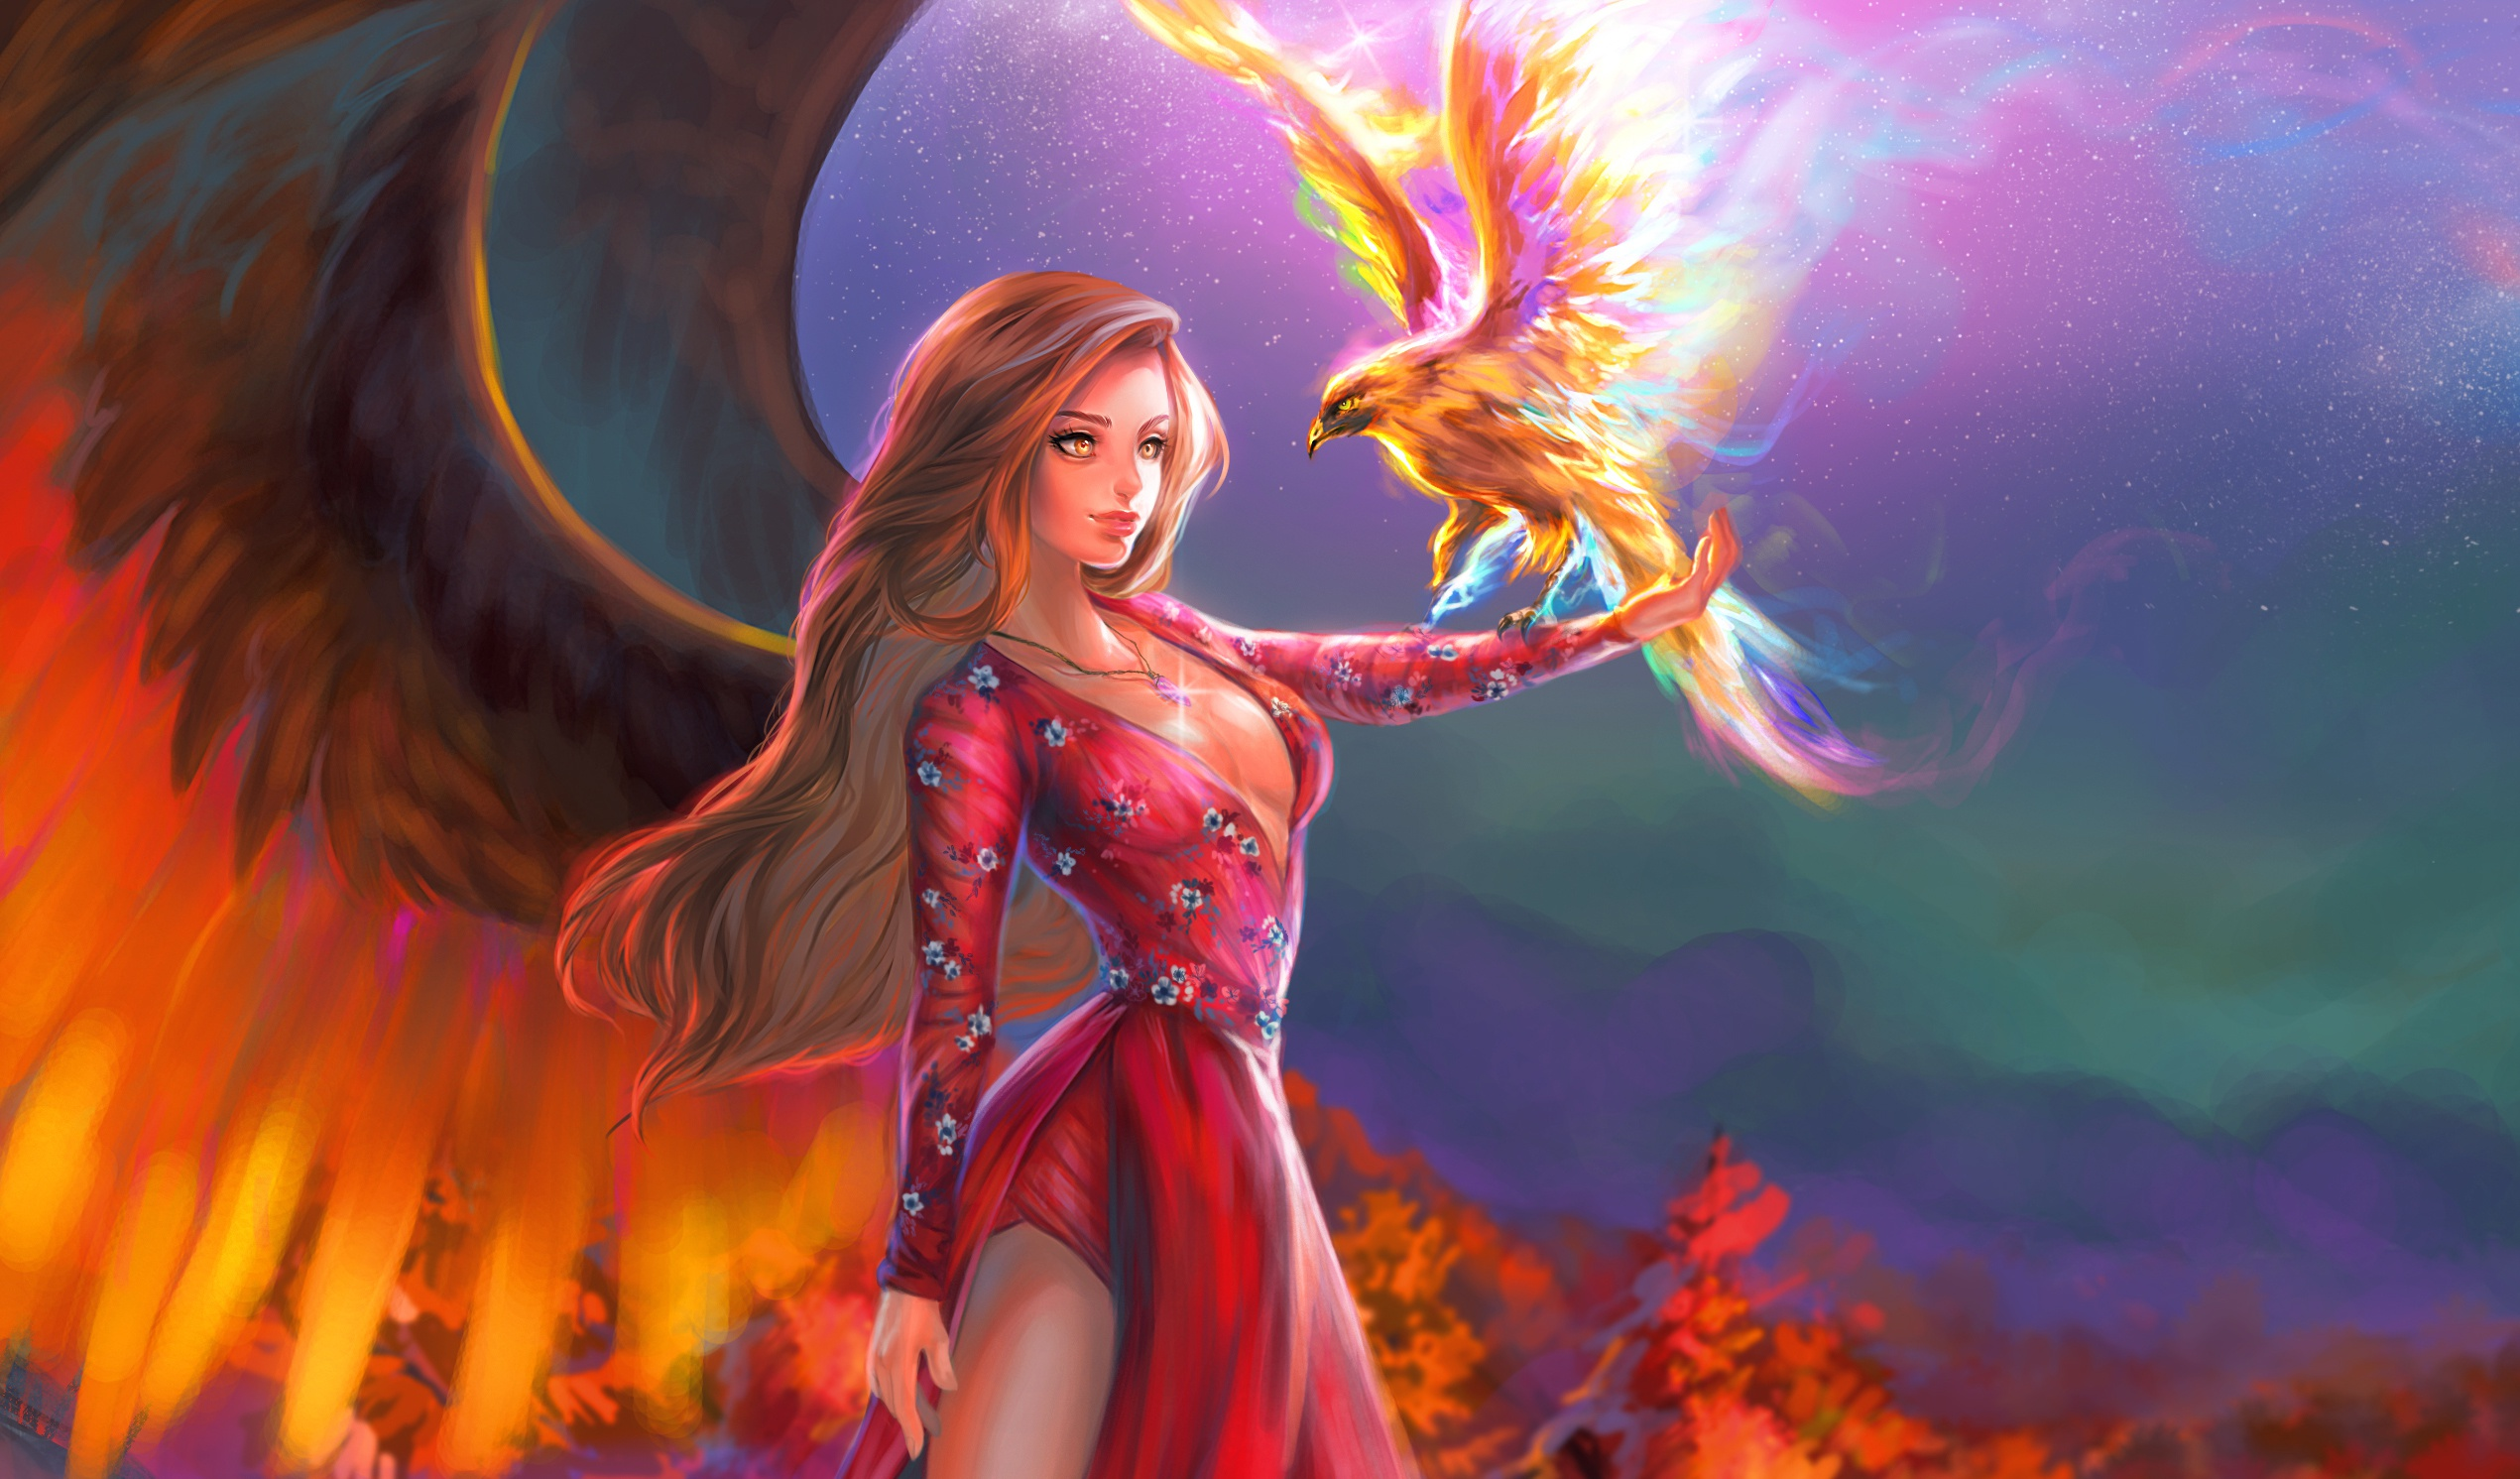 Fantasy Girl With Phoenix Hd Fantasy Girls 4k Wallpapers Images